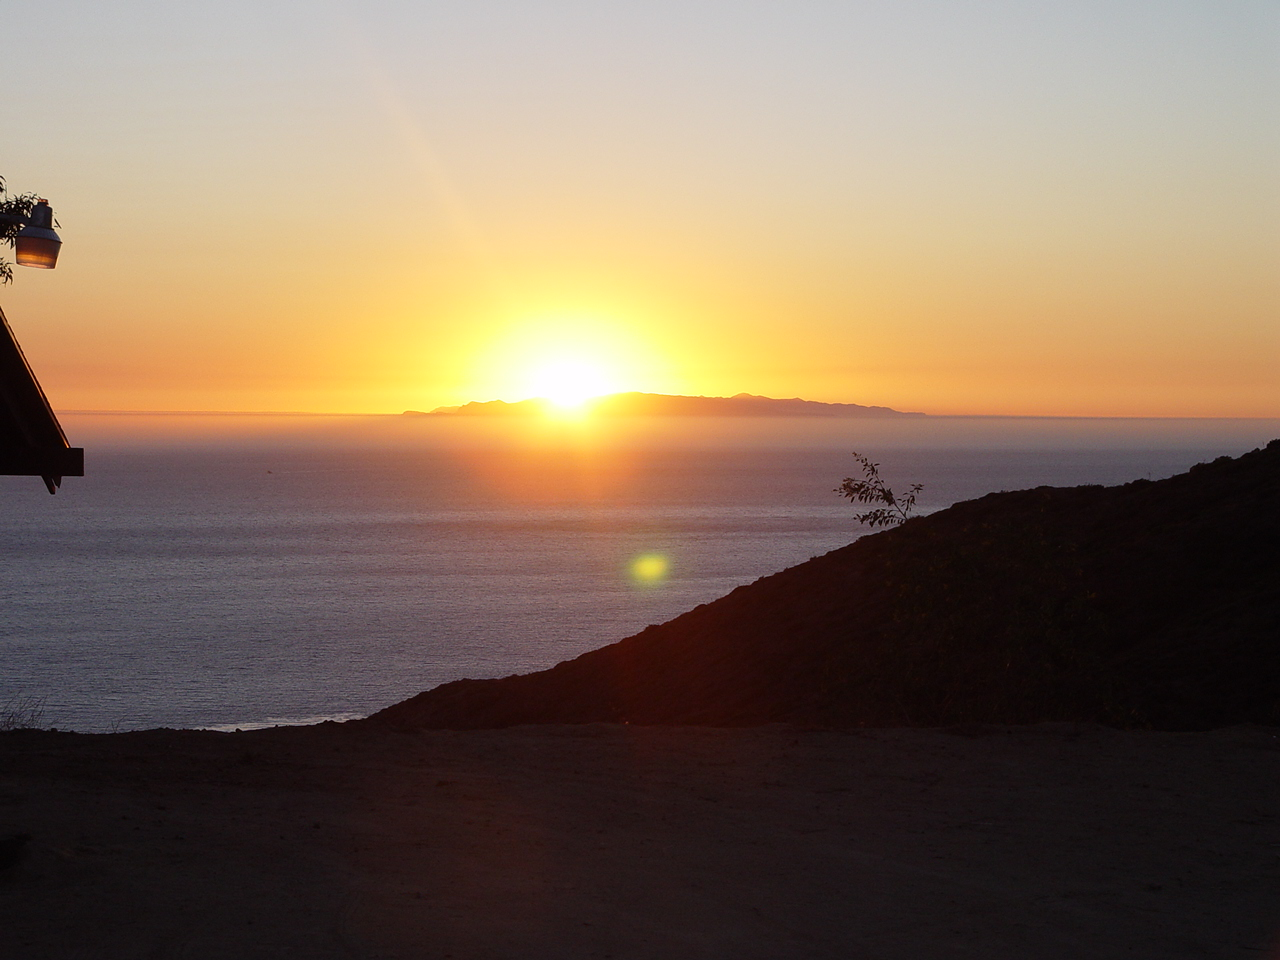 Malibu sunset over ocean.JPG